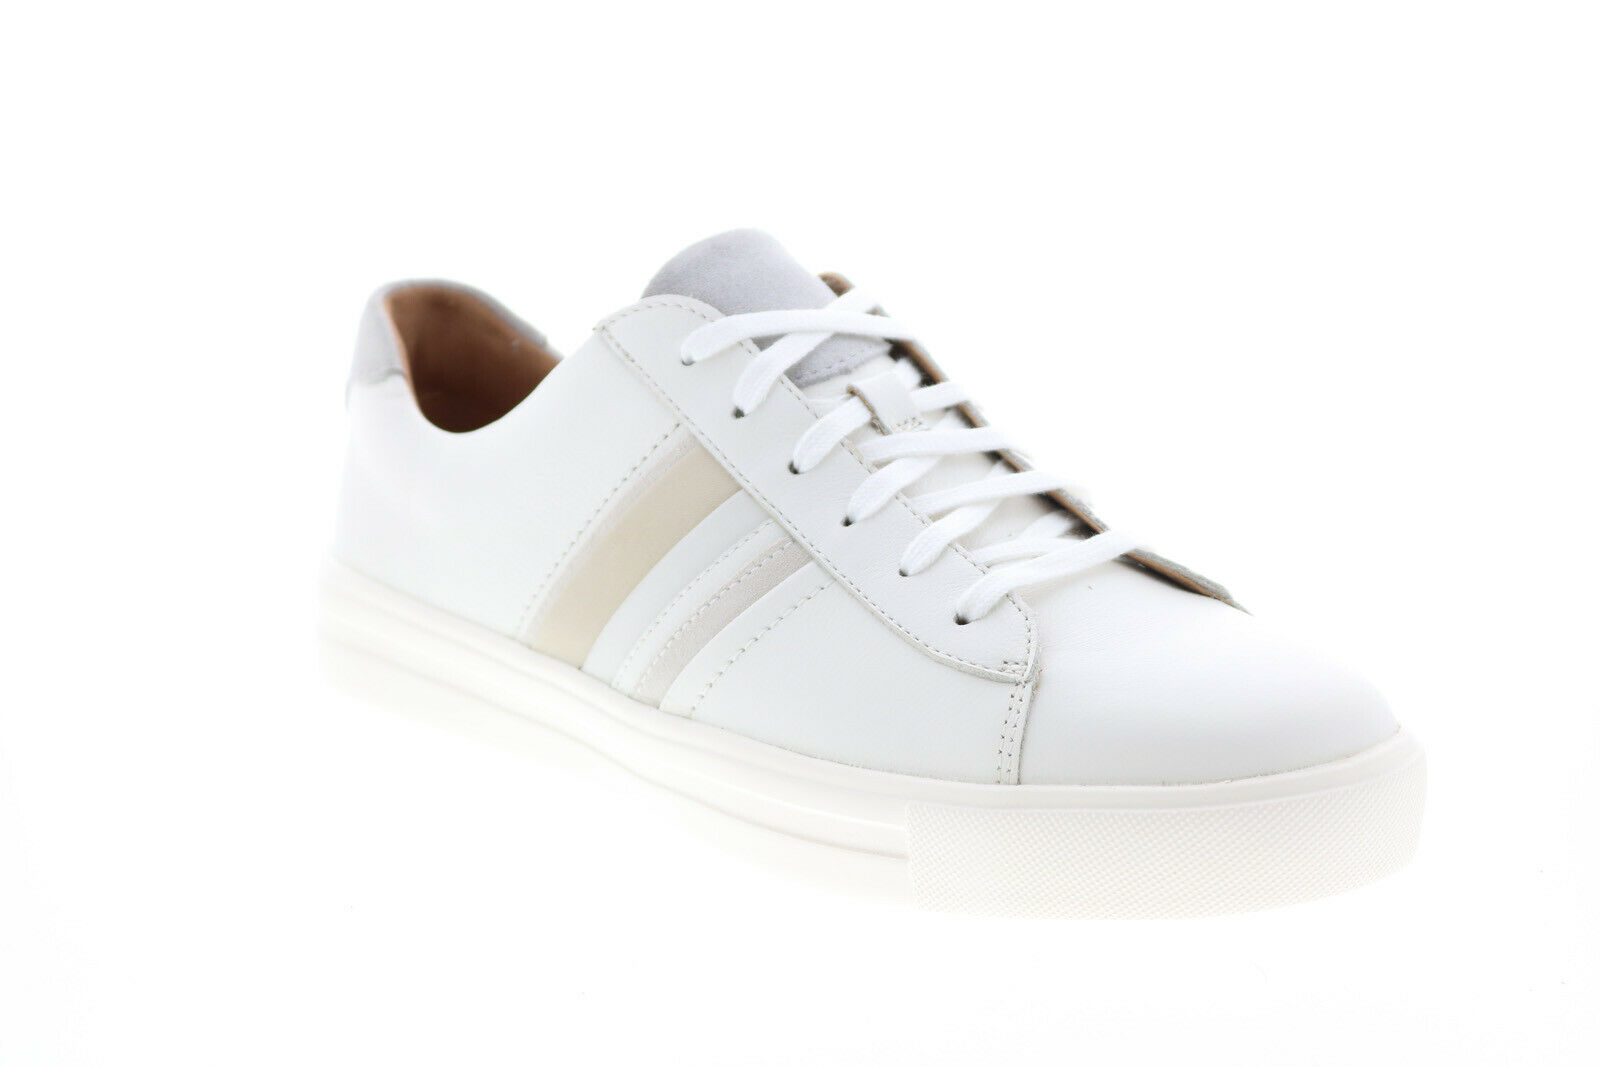 Clarks Un Maui Band Combi 26150538 Womens White Lifestyle Sneakers Shoes